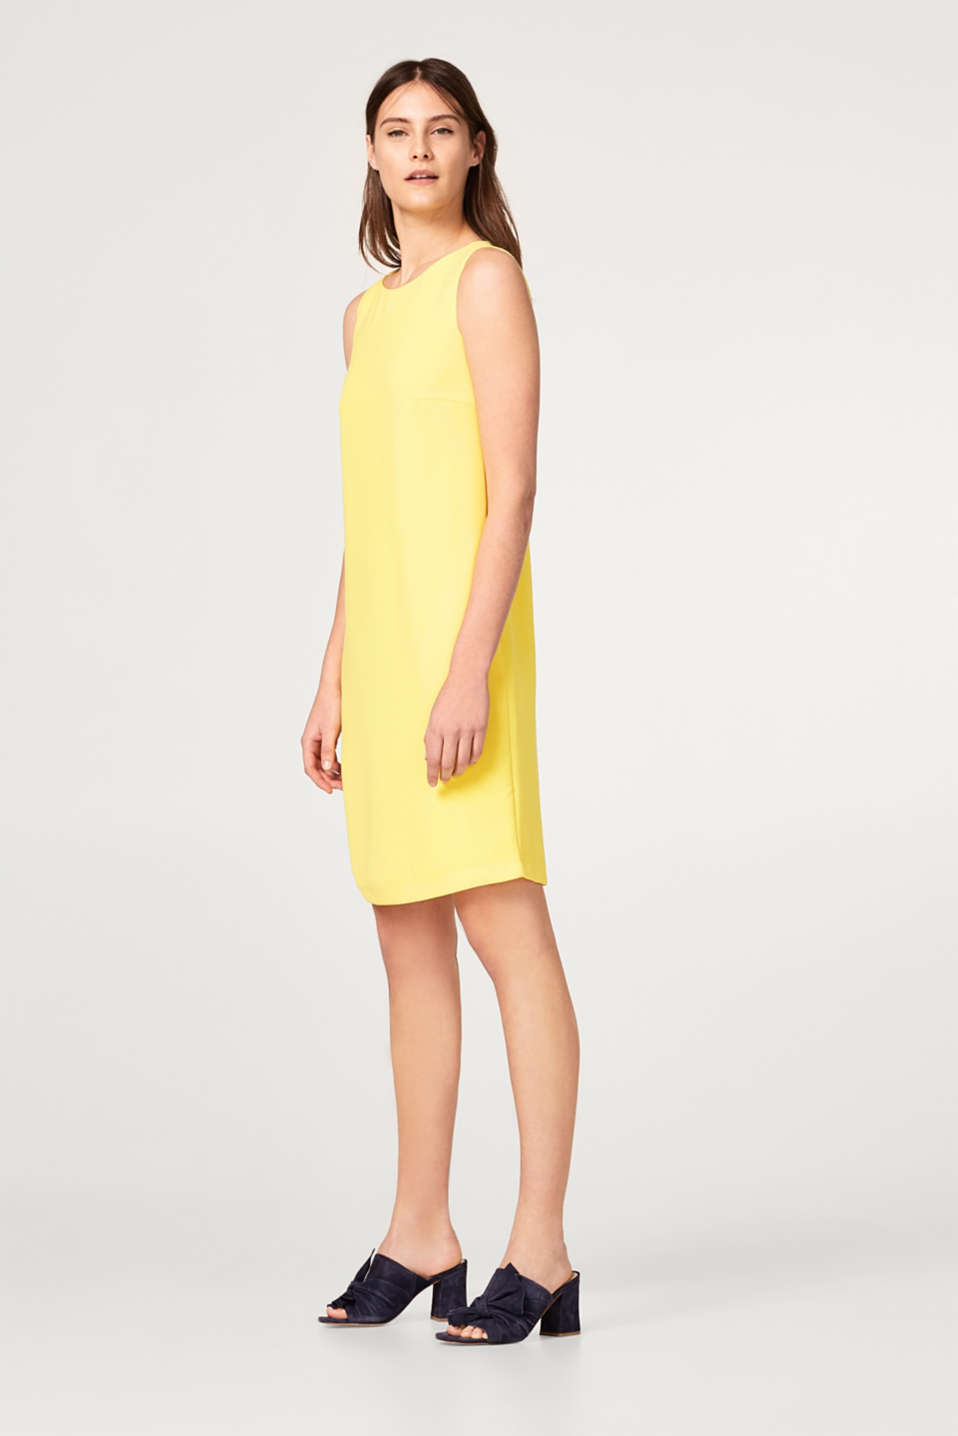 Lightweight crêpe dress in a subtle A-line